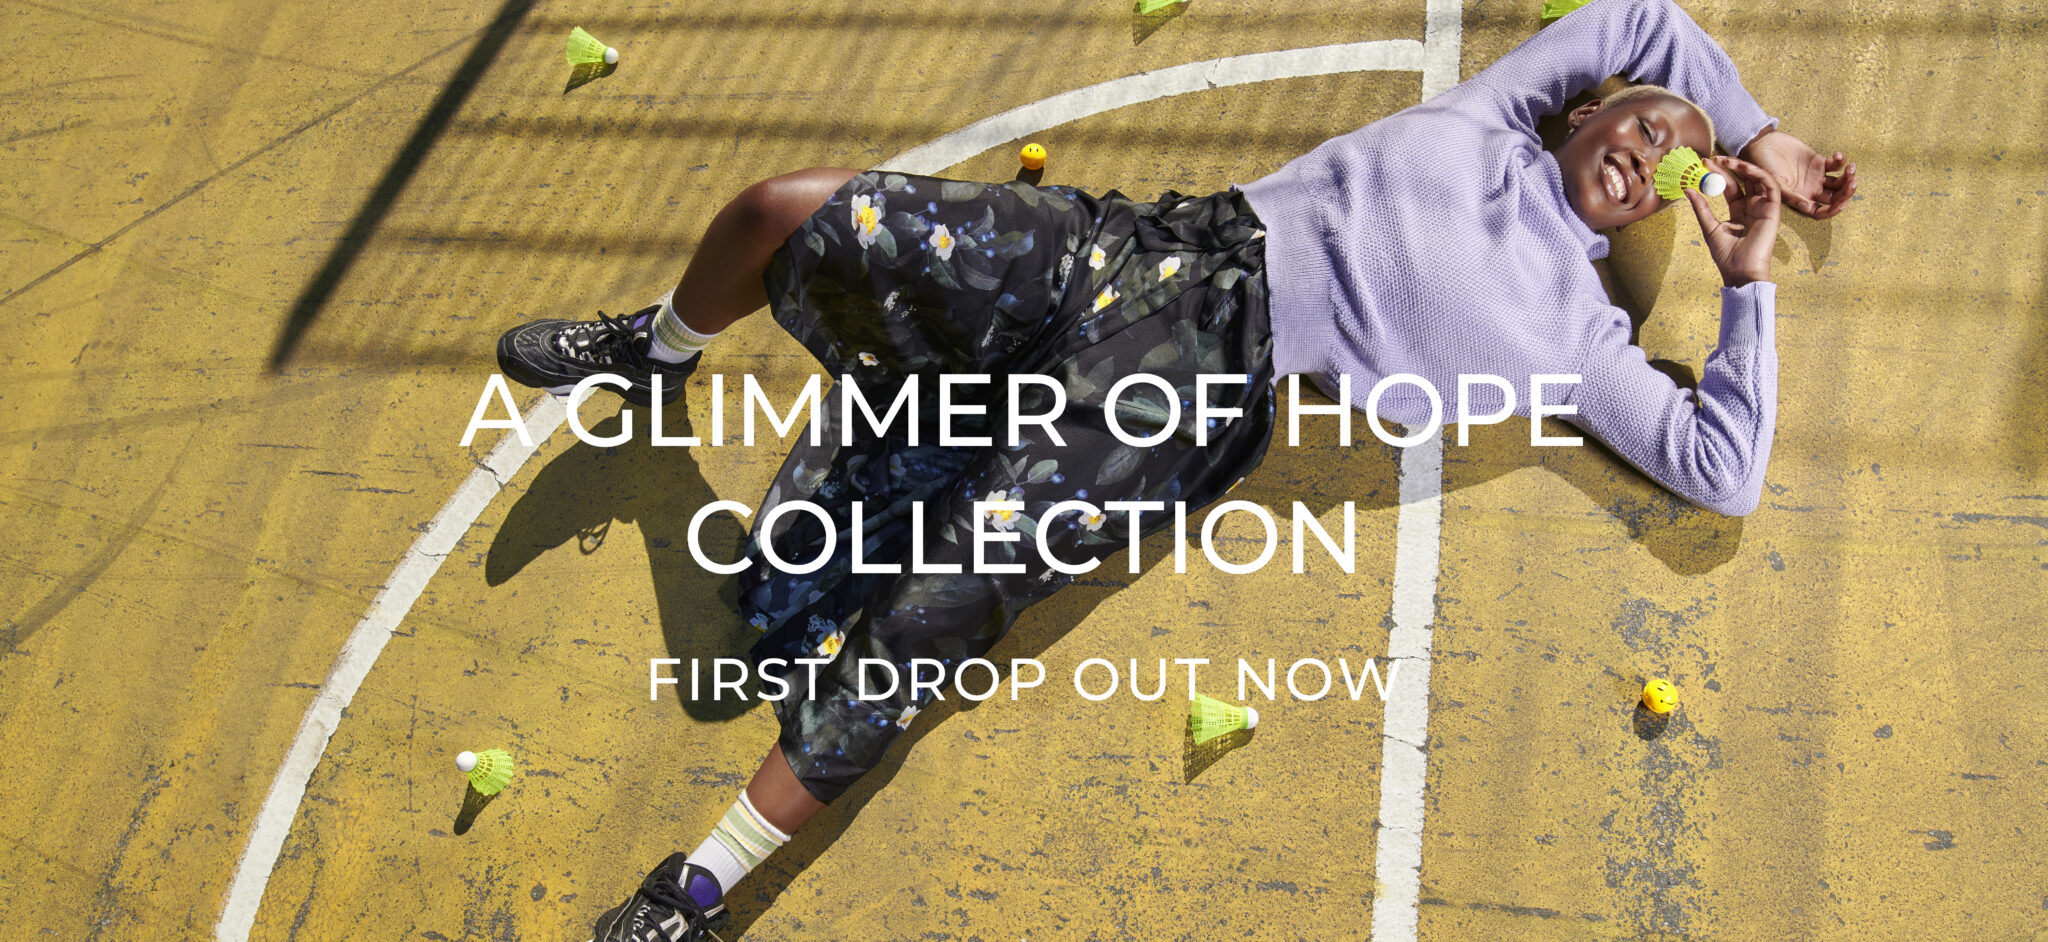 Uhana - A Glimmer Of Hope Collection - First Drop Out Now